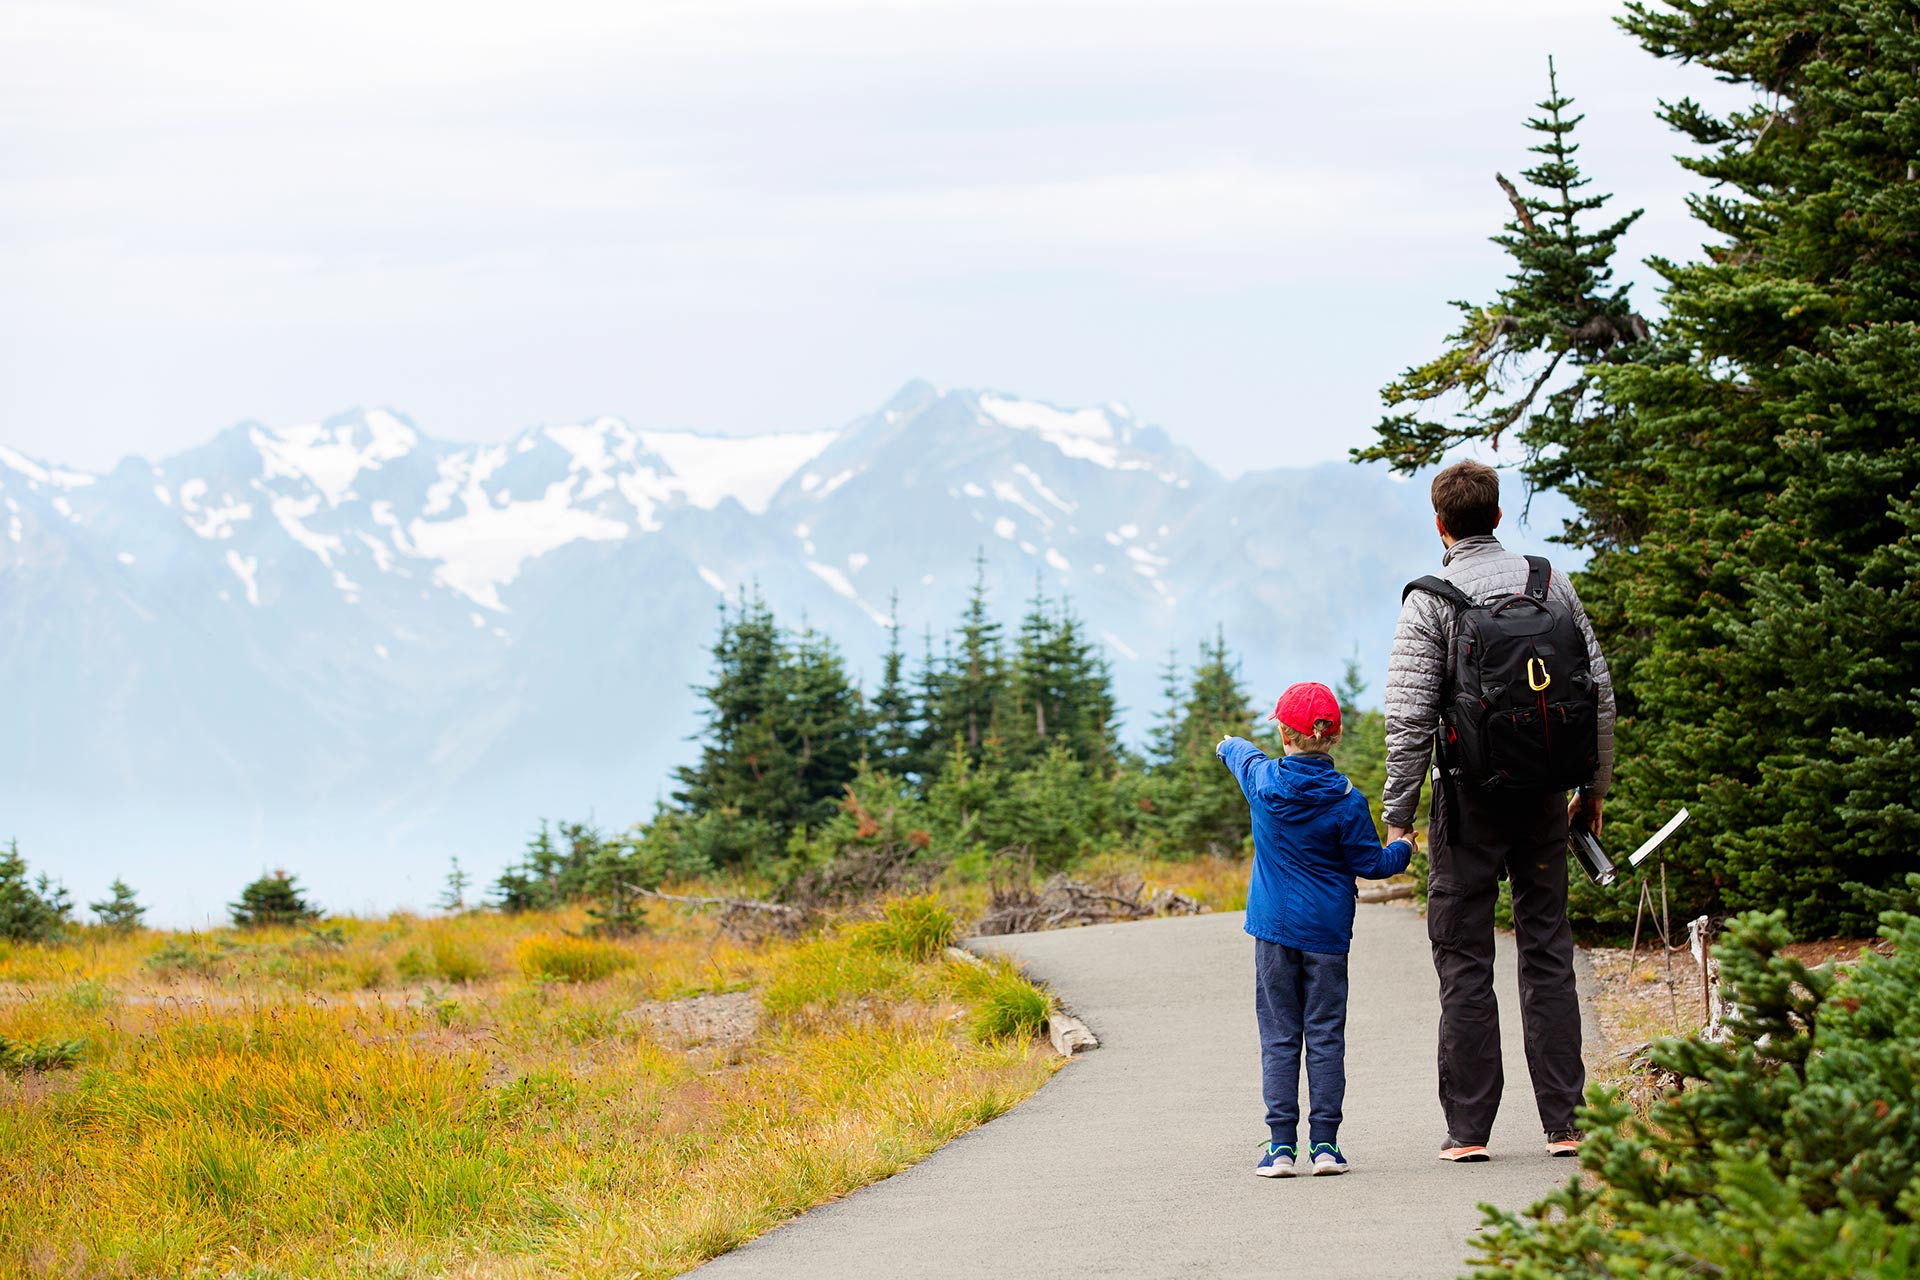 A father and son taking in the beautiful views at Olympic National Park in Washington.